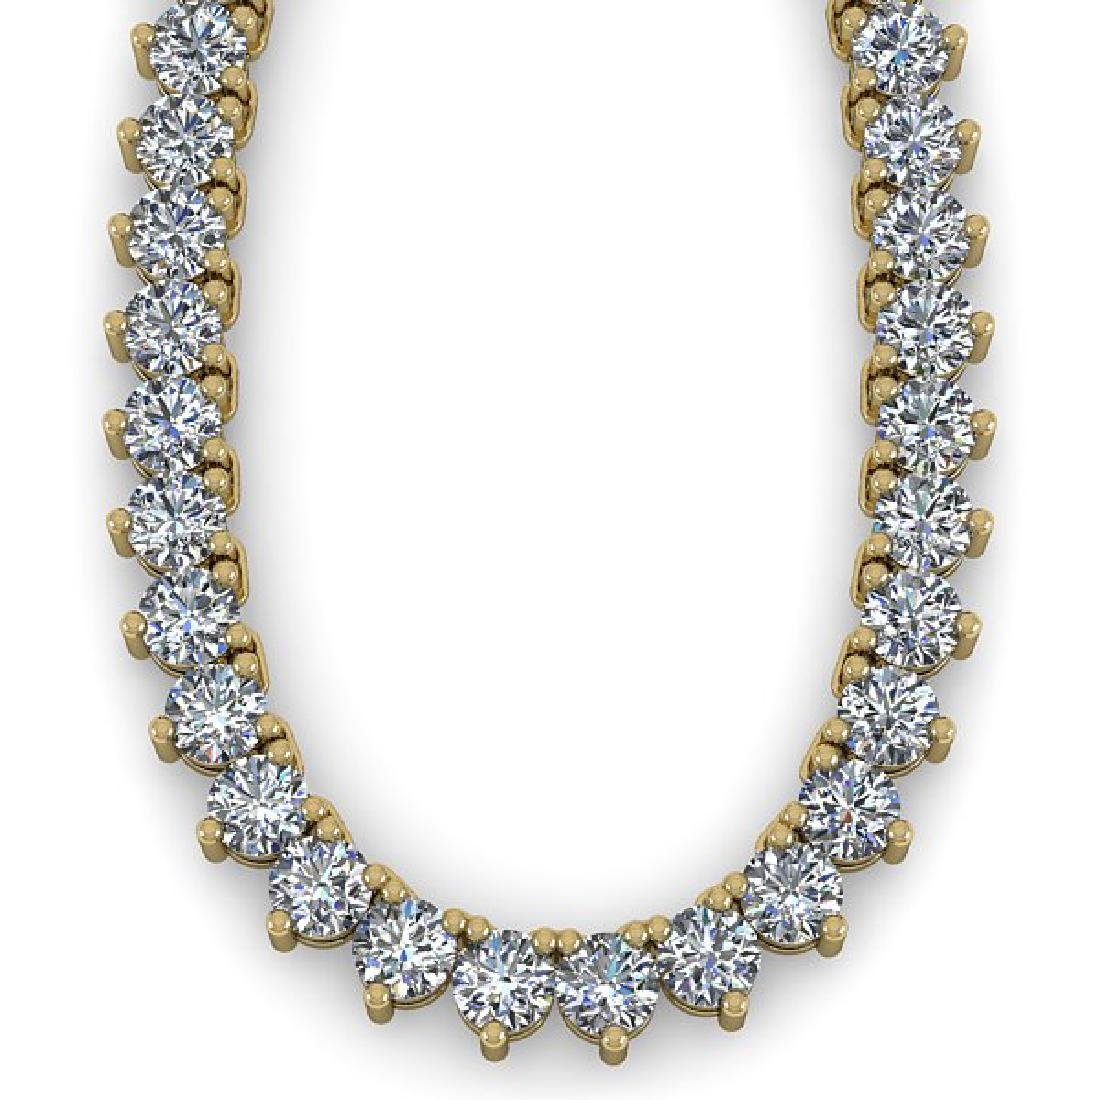 65 CTW Solitaire Certified SI Diamond Necklace 18K - 2